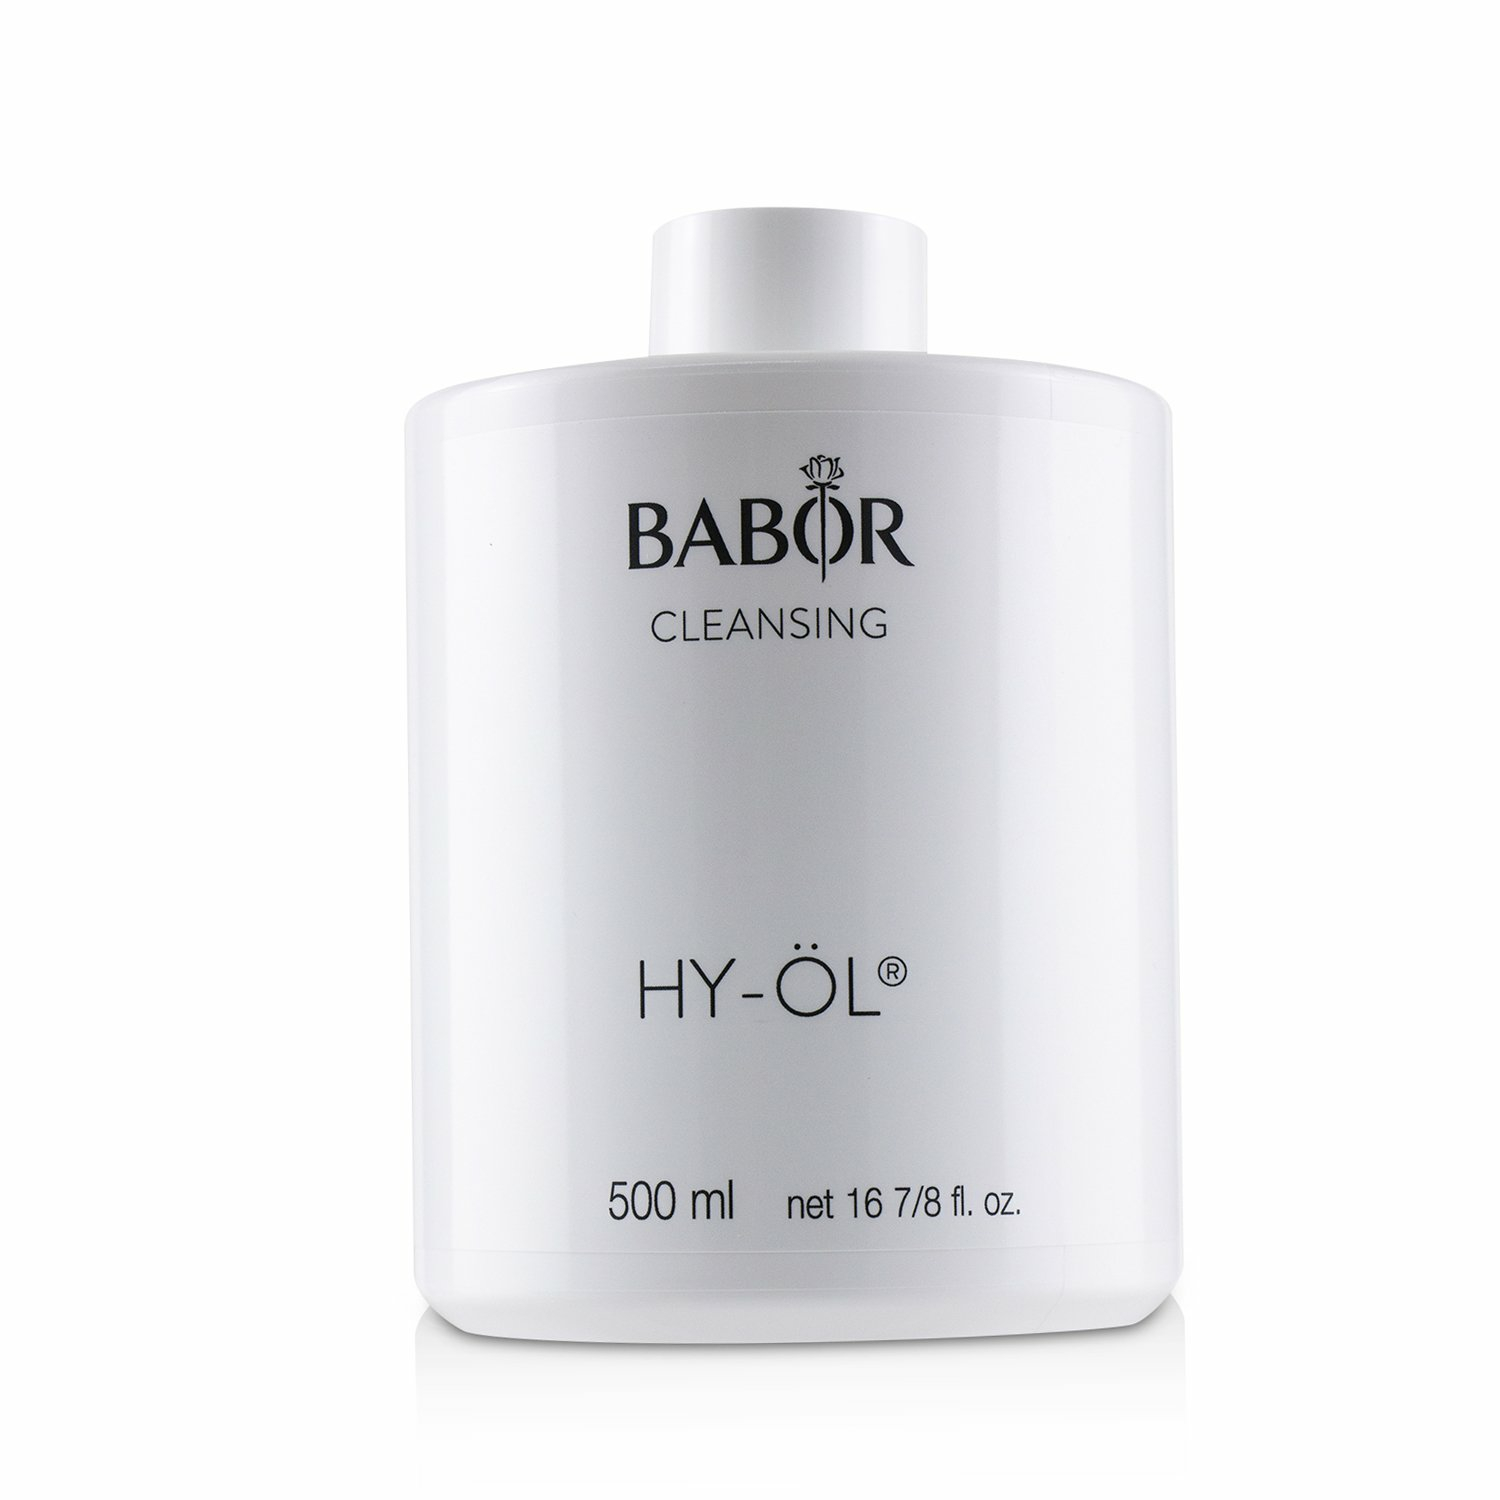 Babor Women's Cleansing Hy-Öl Face Cleanser